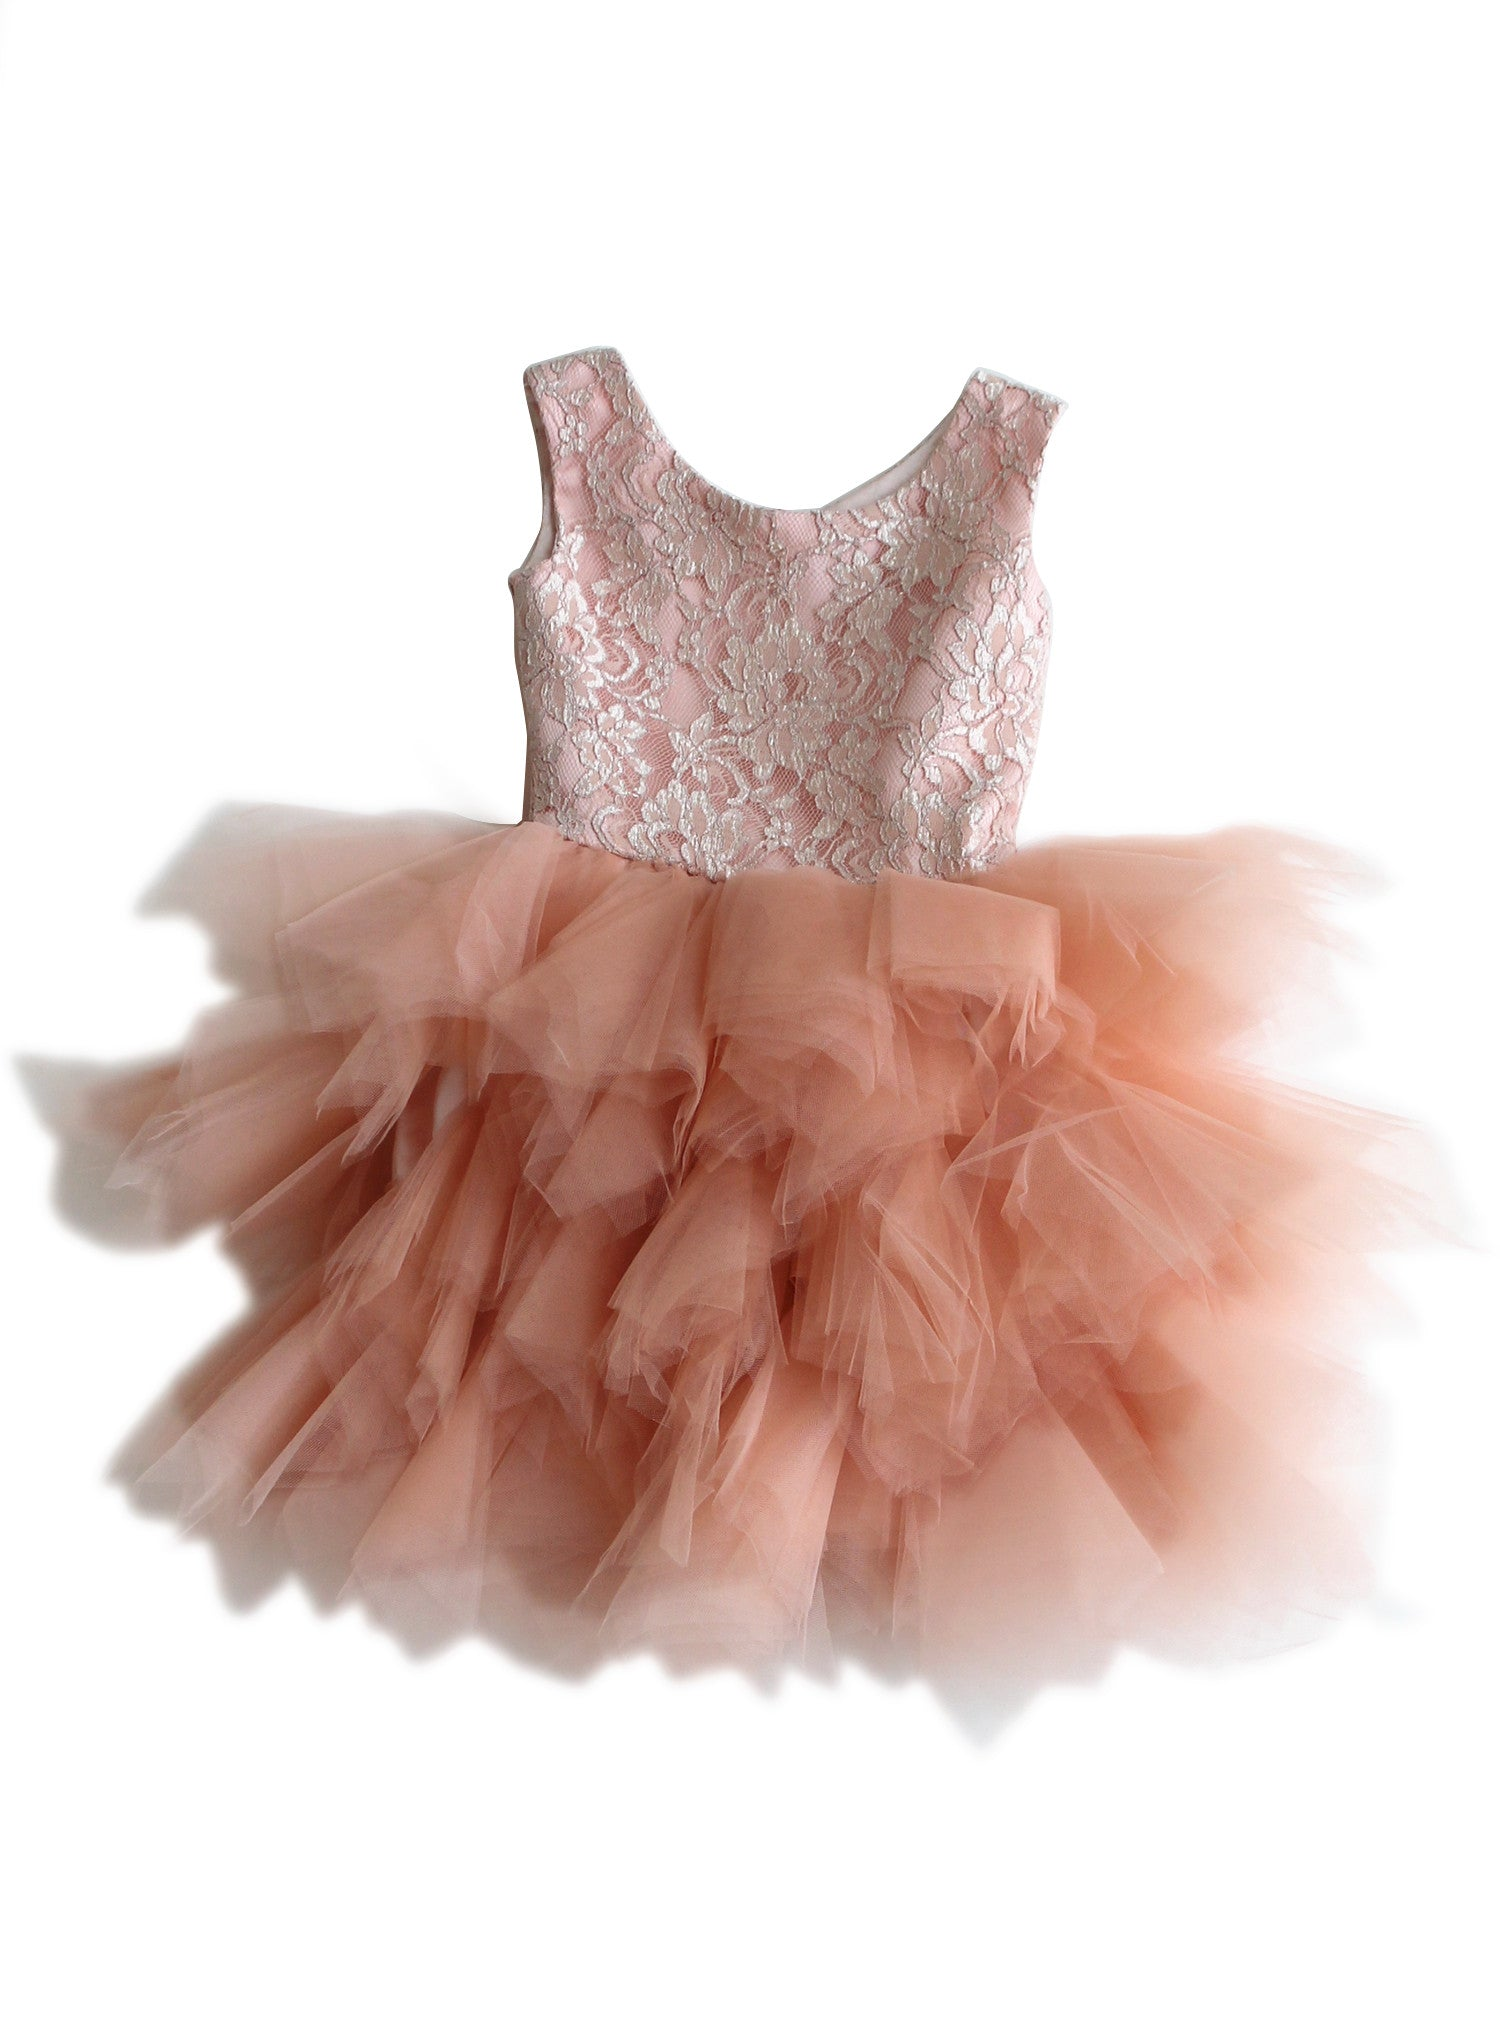 26fe499eae8f1 DOLLY_by_Le_Petit_Tom_Pirouette_Dress_in_Ballet_Pink_for_rent_from_The_Borrowed_Boutique.jpg?v=1488796957